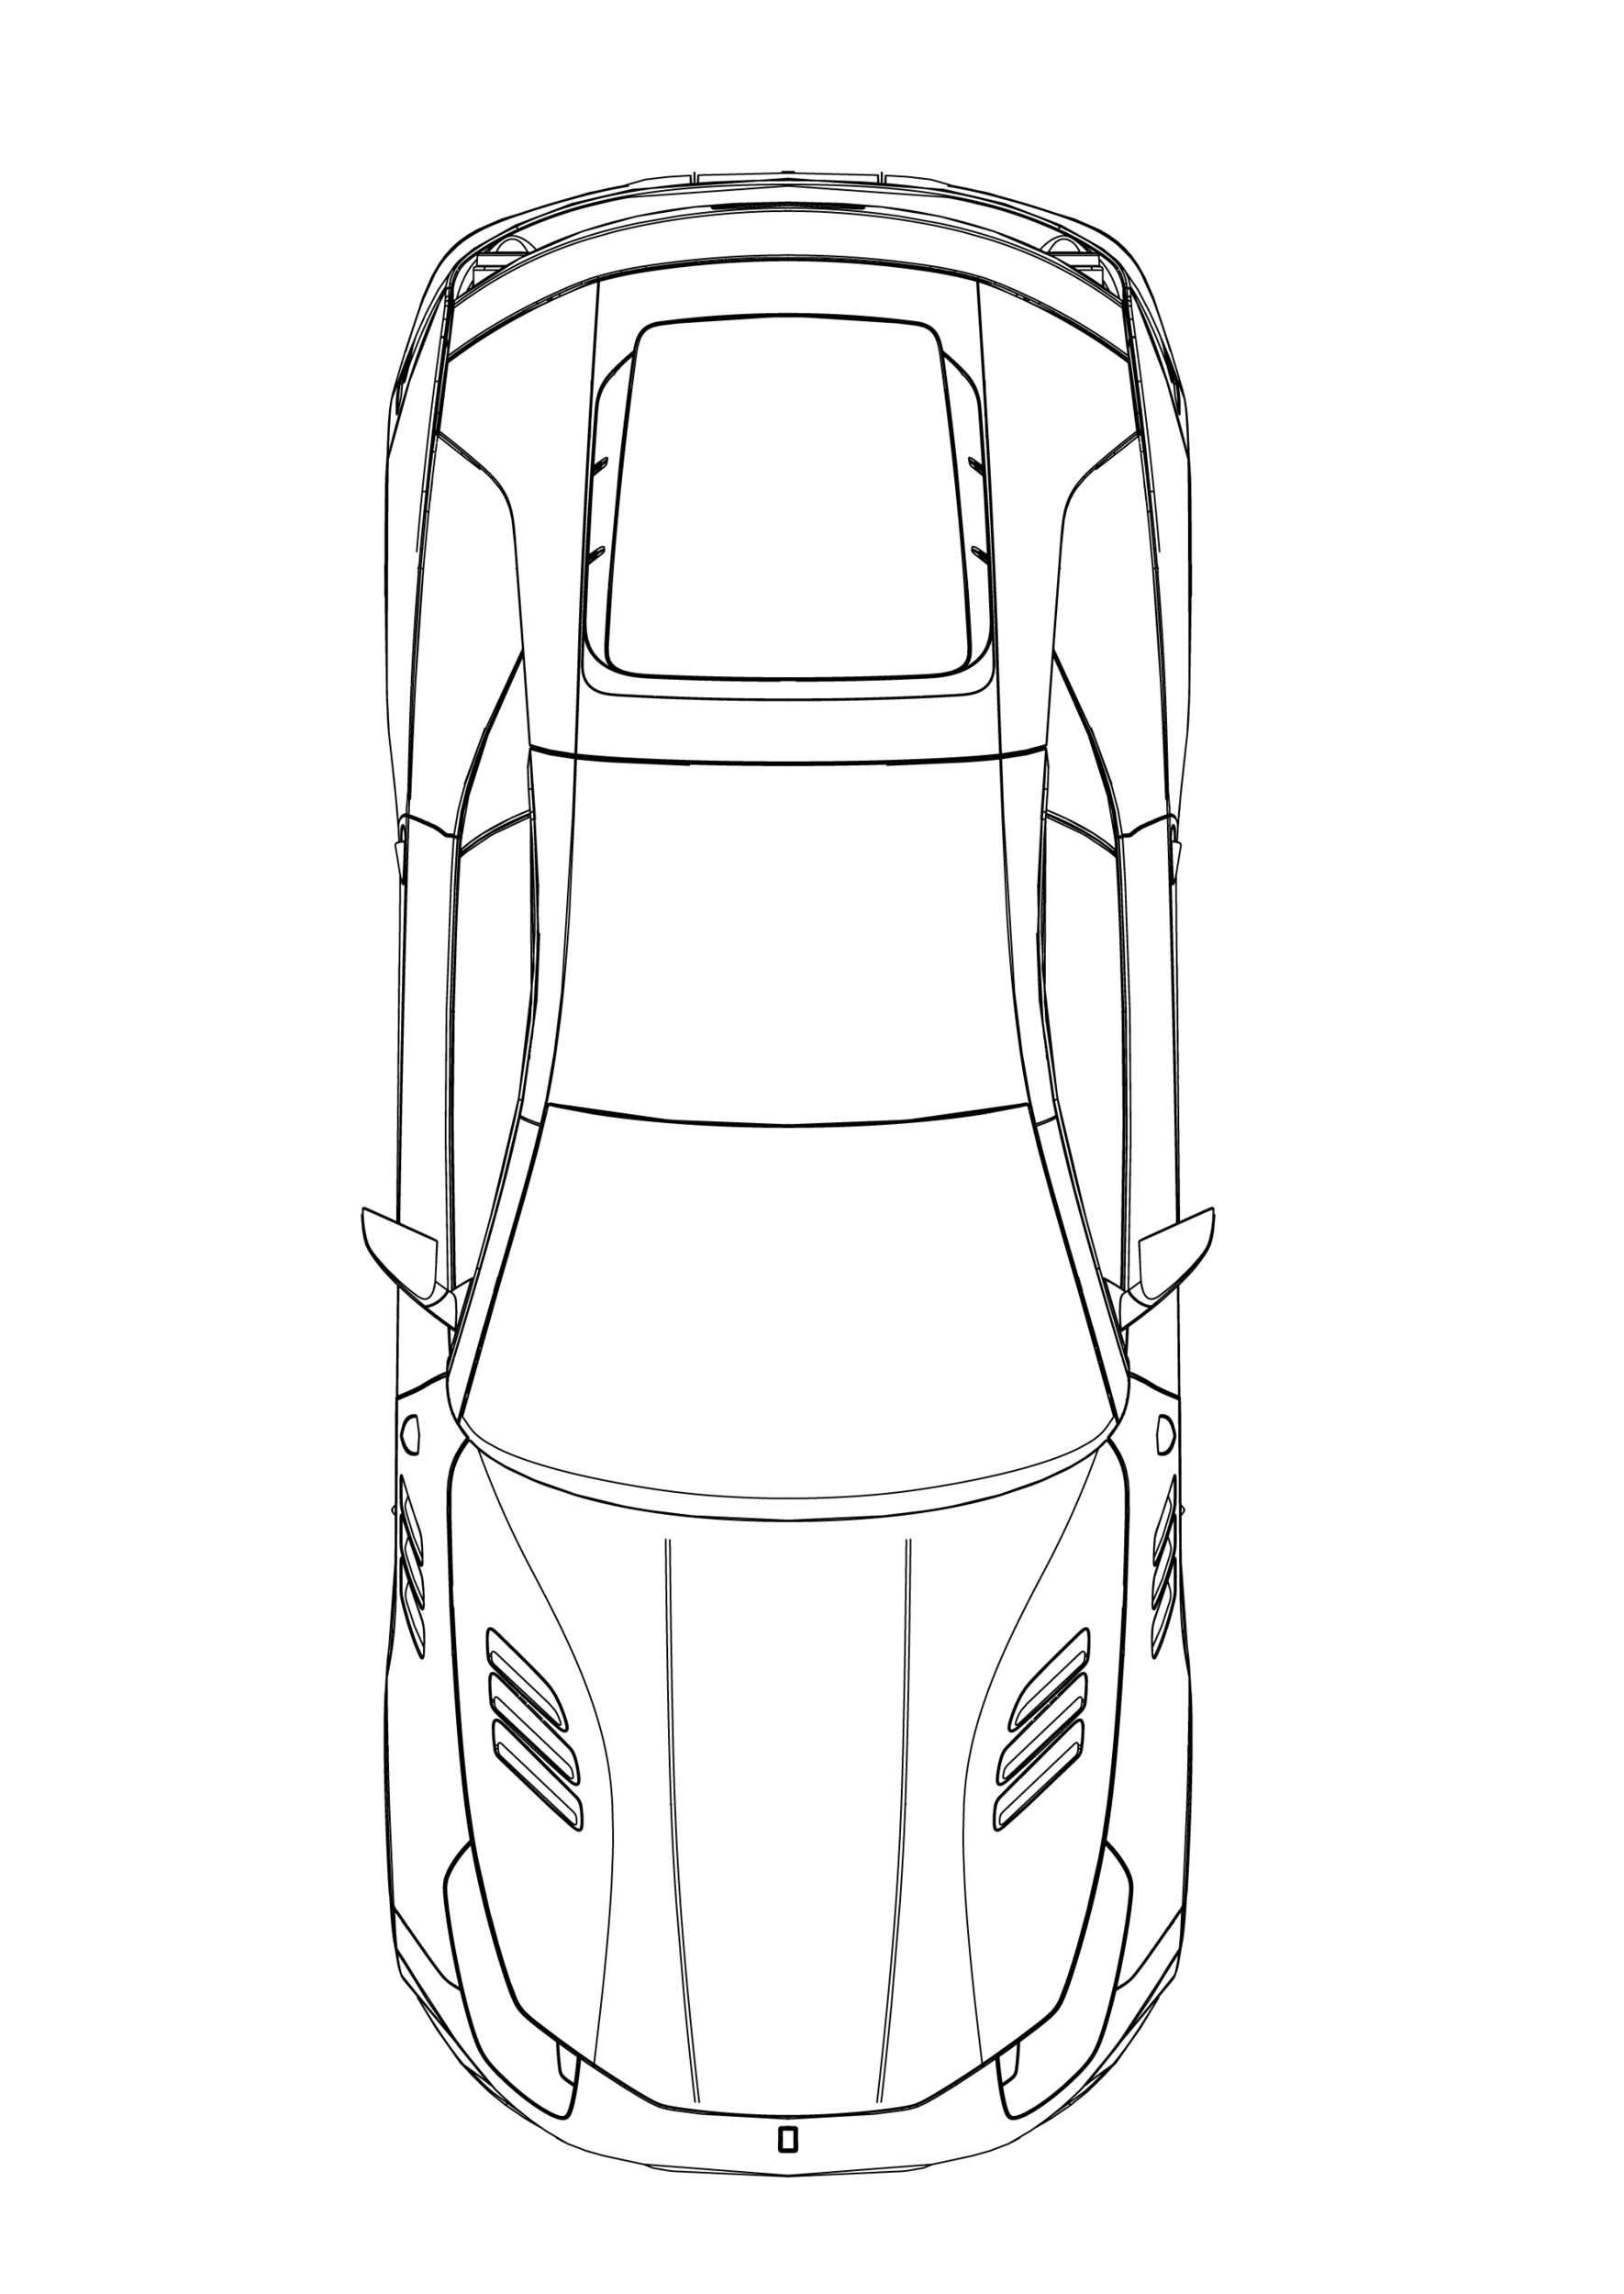 Ferrari Ff Coupe Patent Drawings Photos